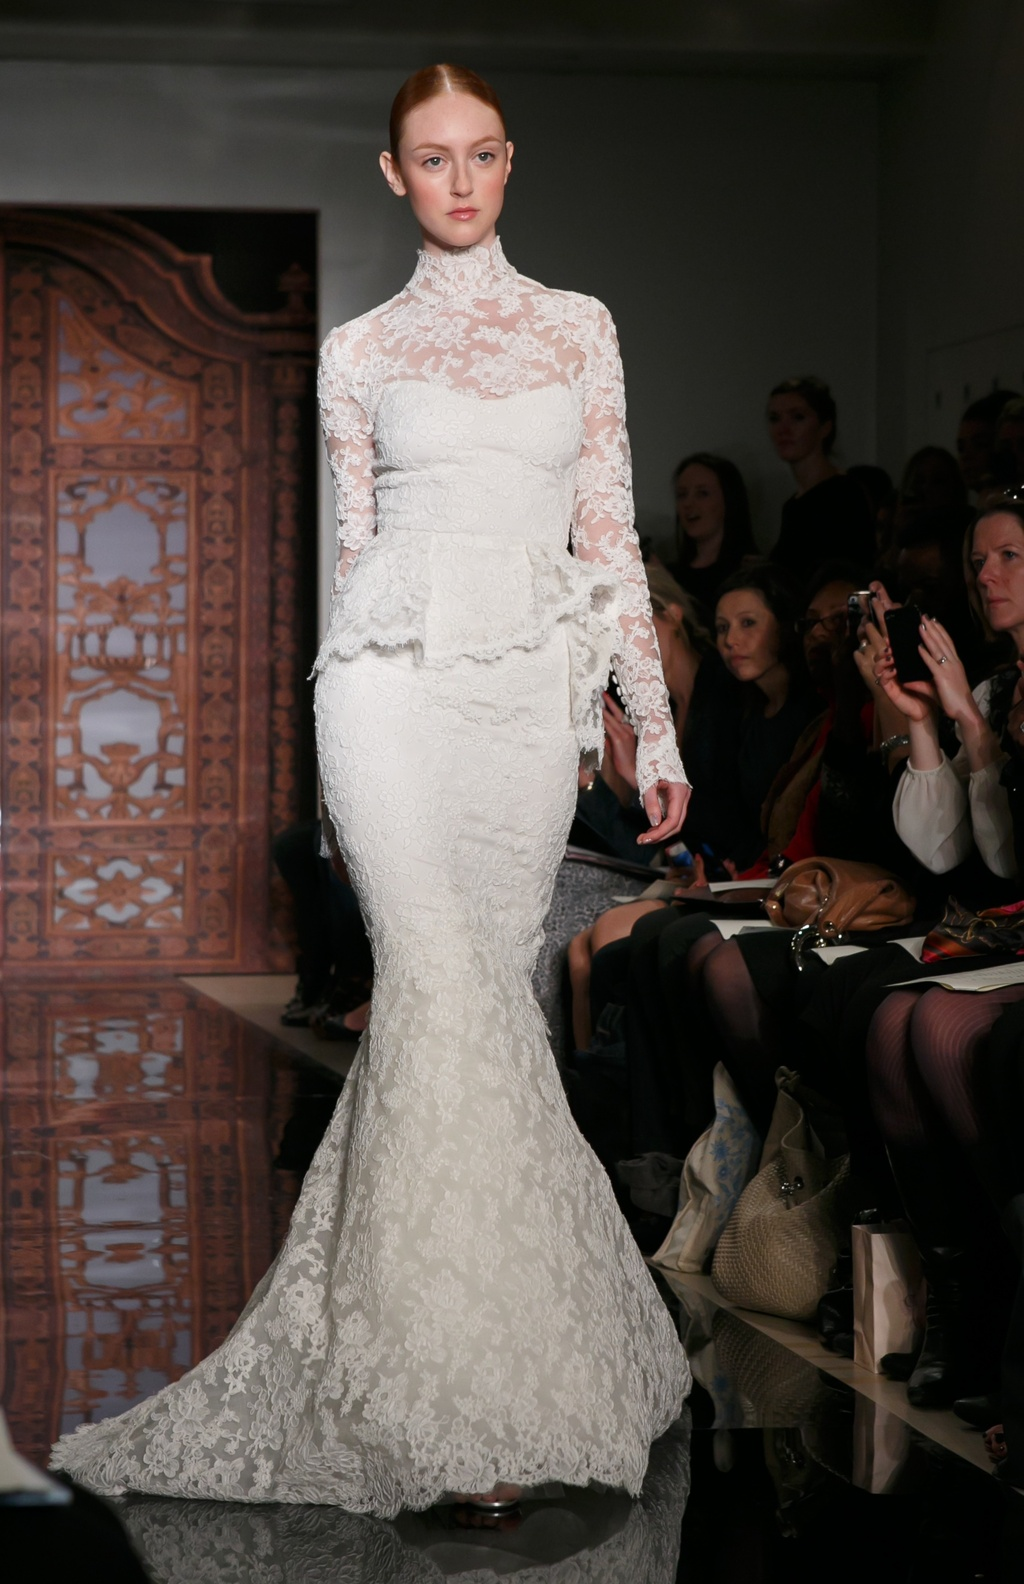 Reem-acra-wedding-dress-fall-2013-bridal-frances-alluring-beauty-lace-peplum-f.full